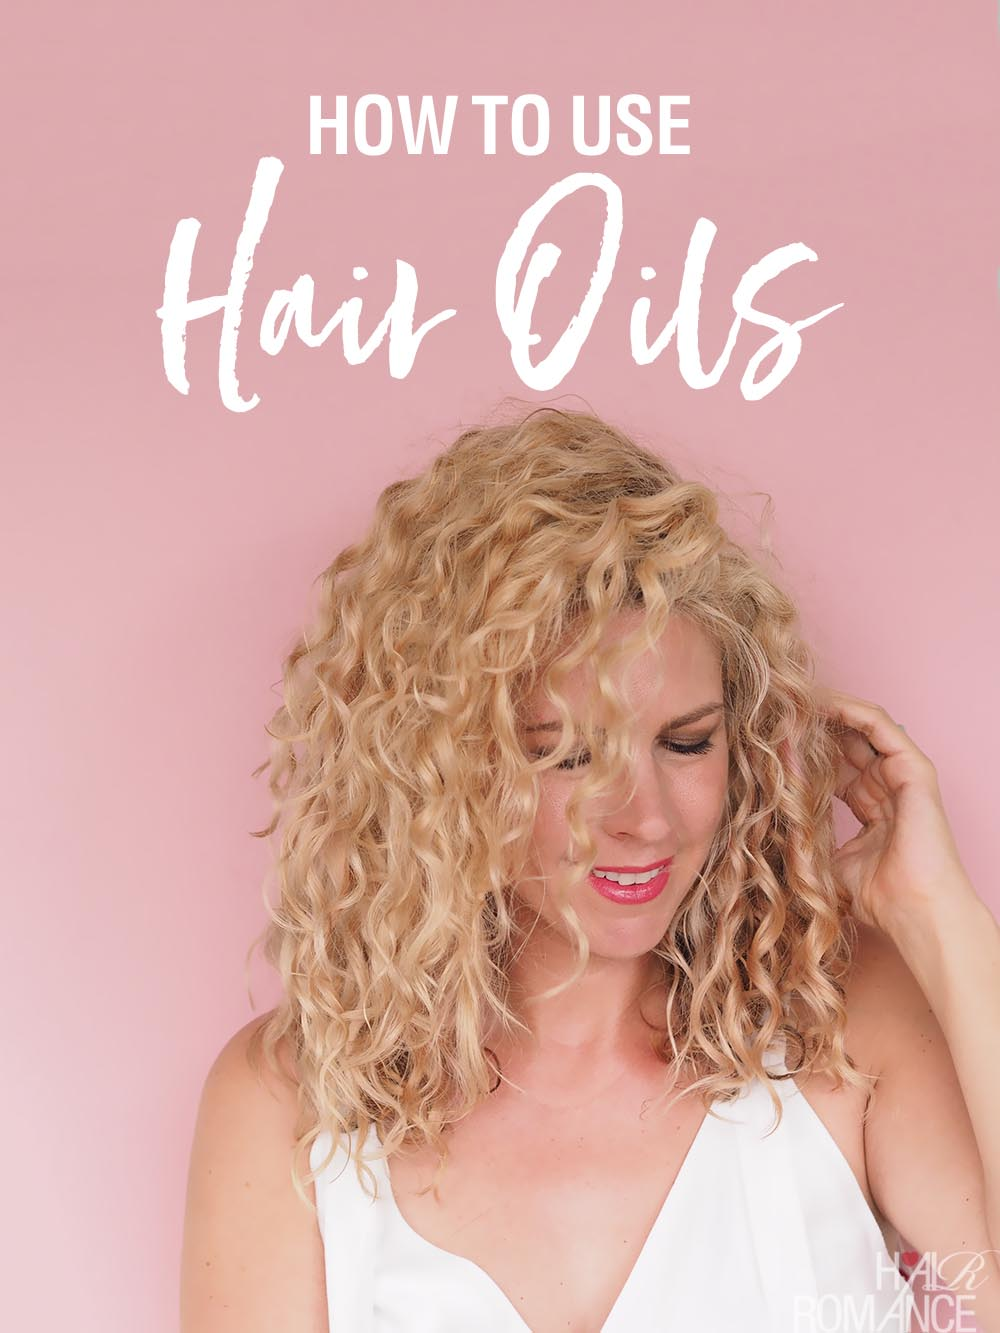 When do you employ hair oils?